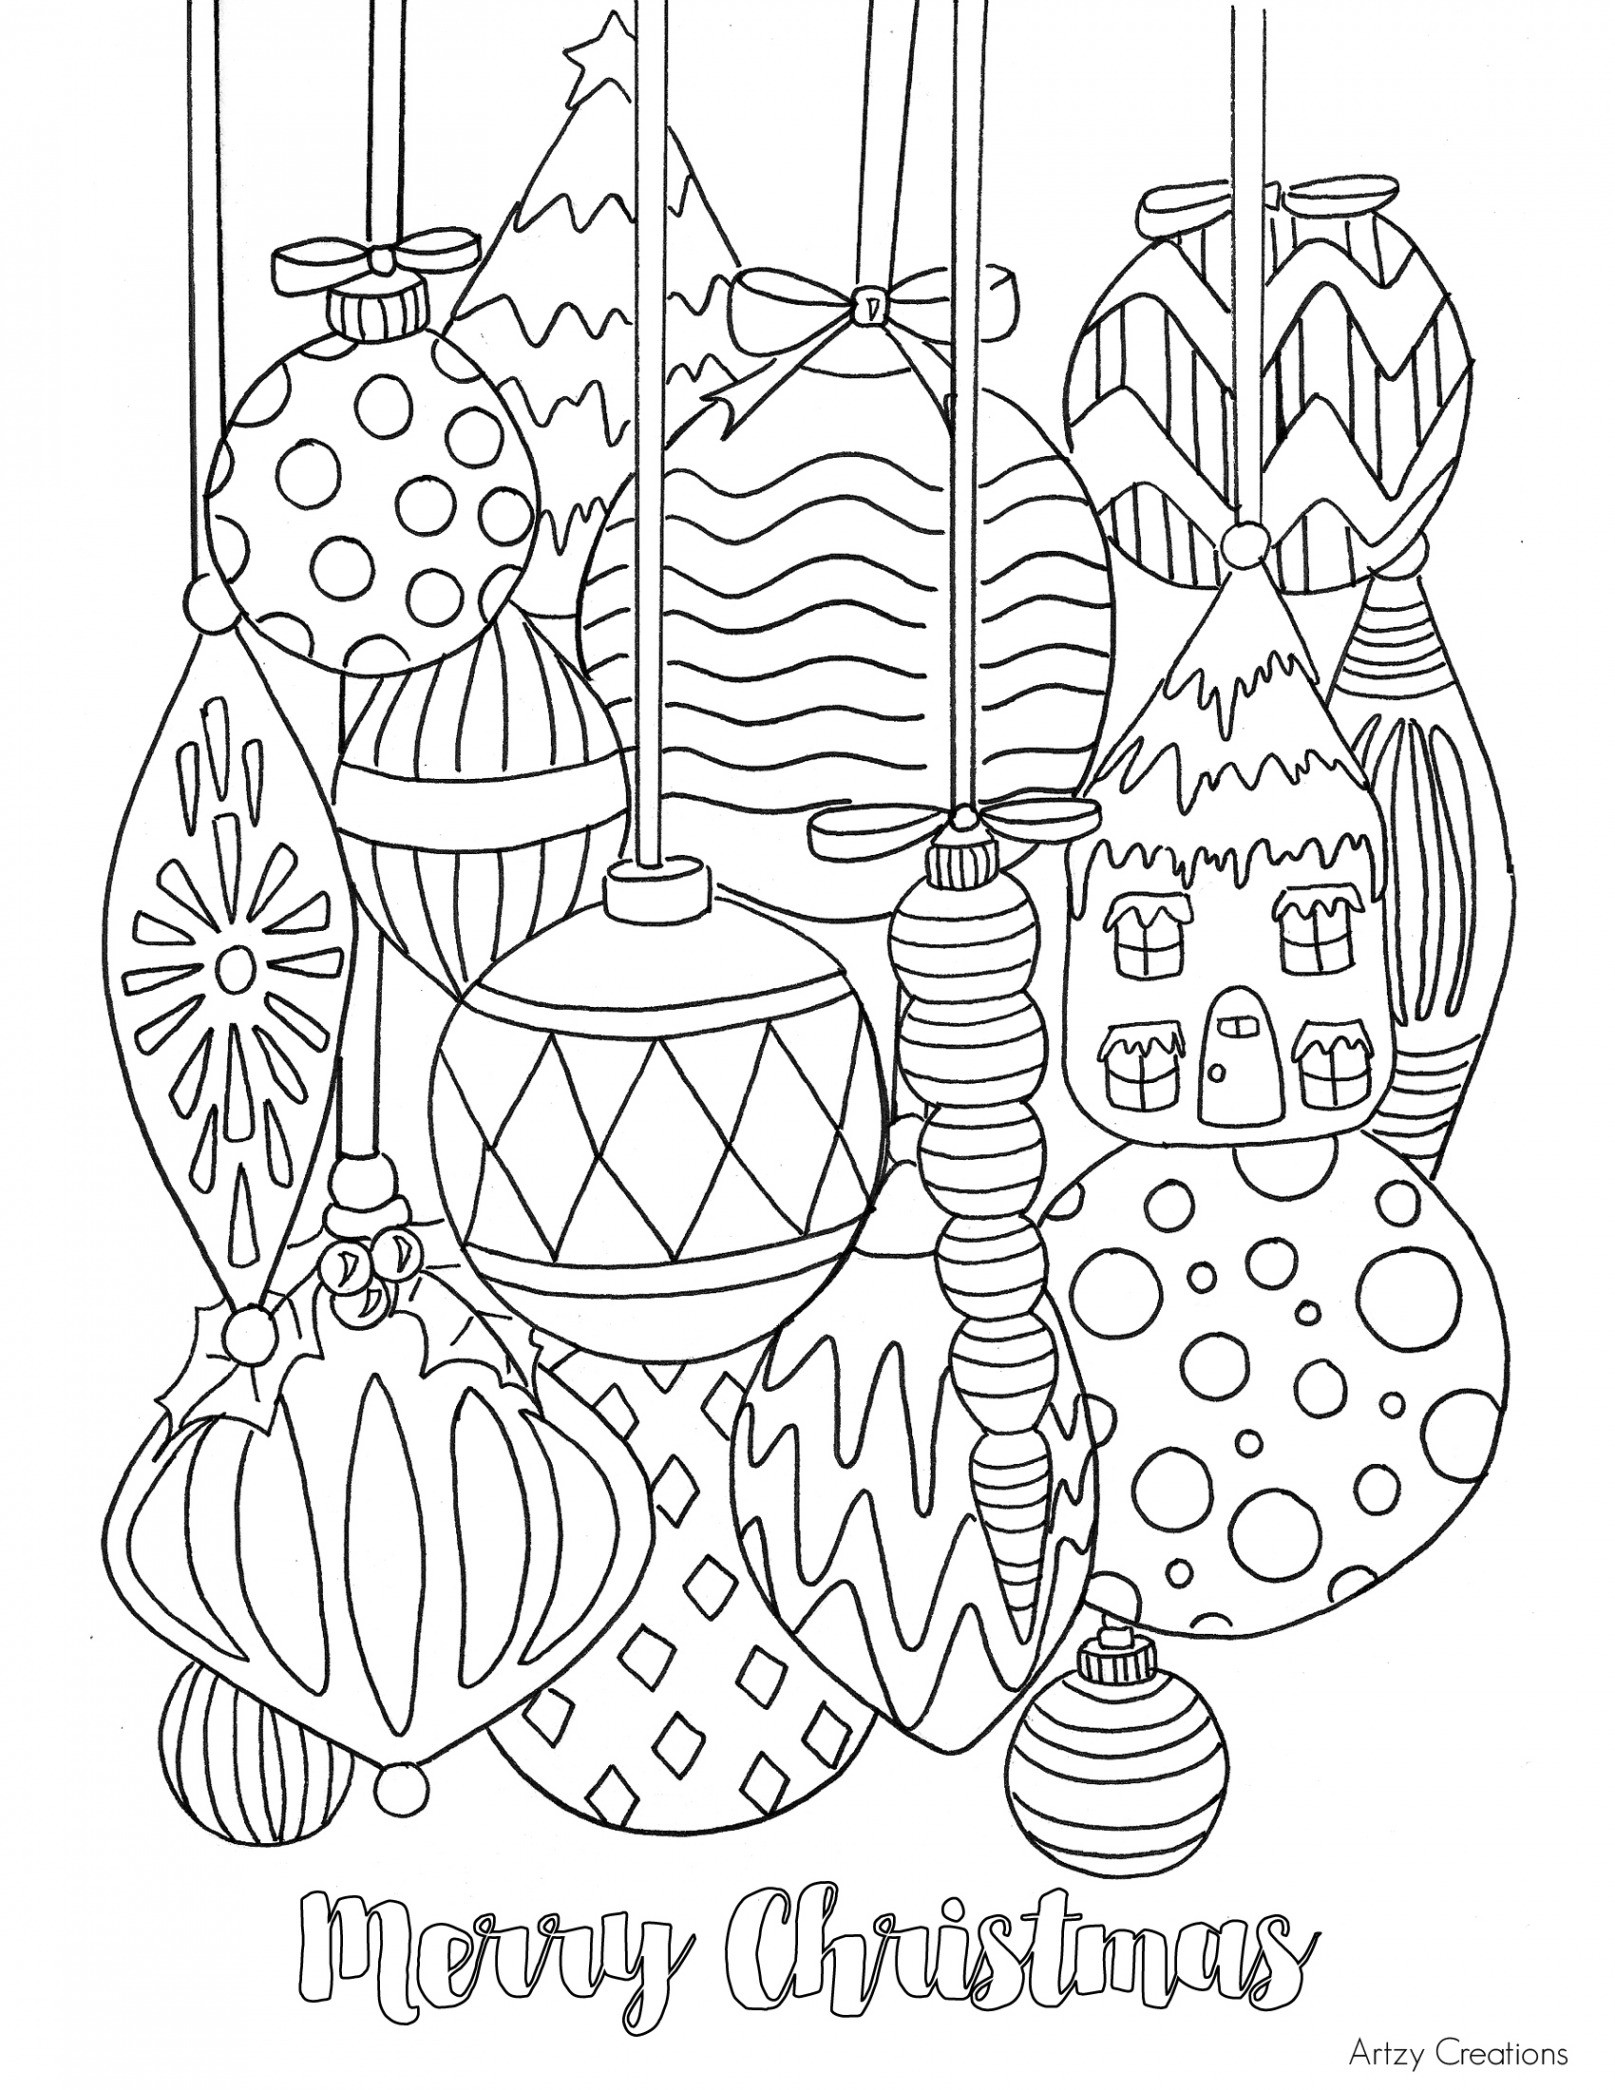 Christmas Colouring Pages Decorations With Ks1 Printable Coloring Page For Kids